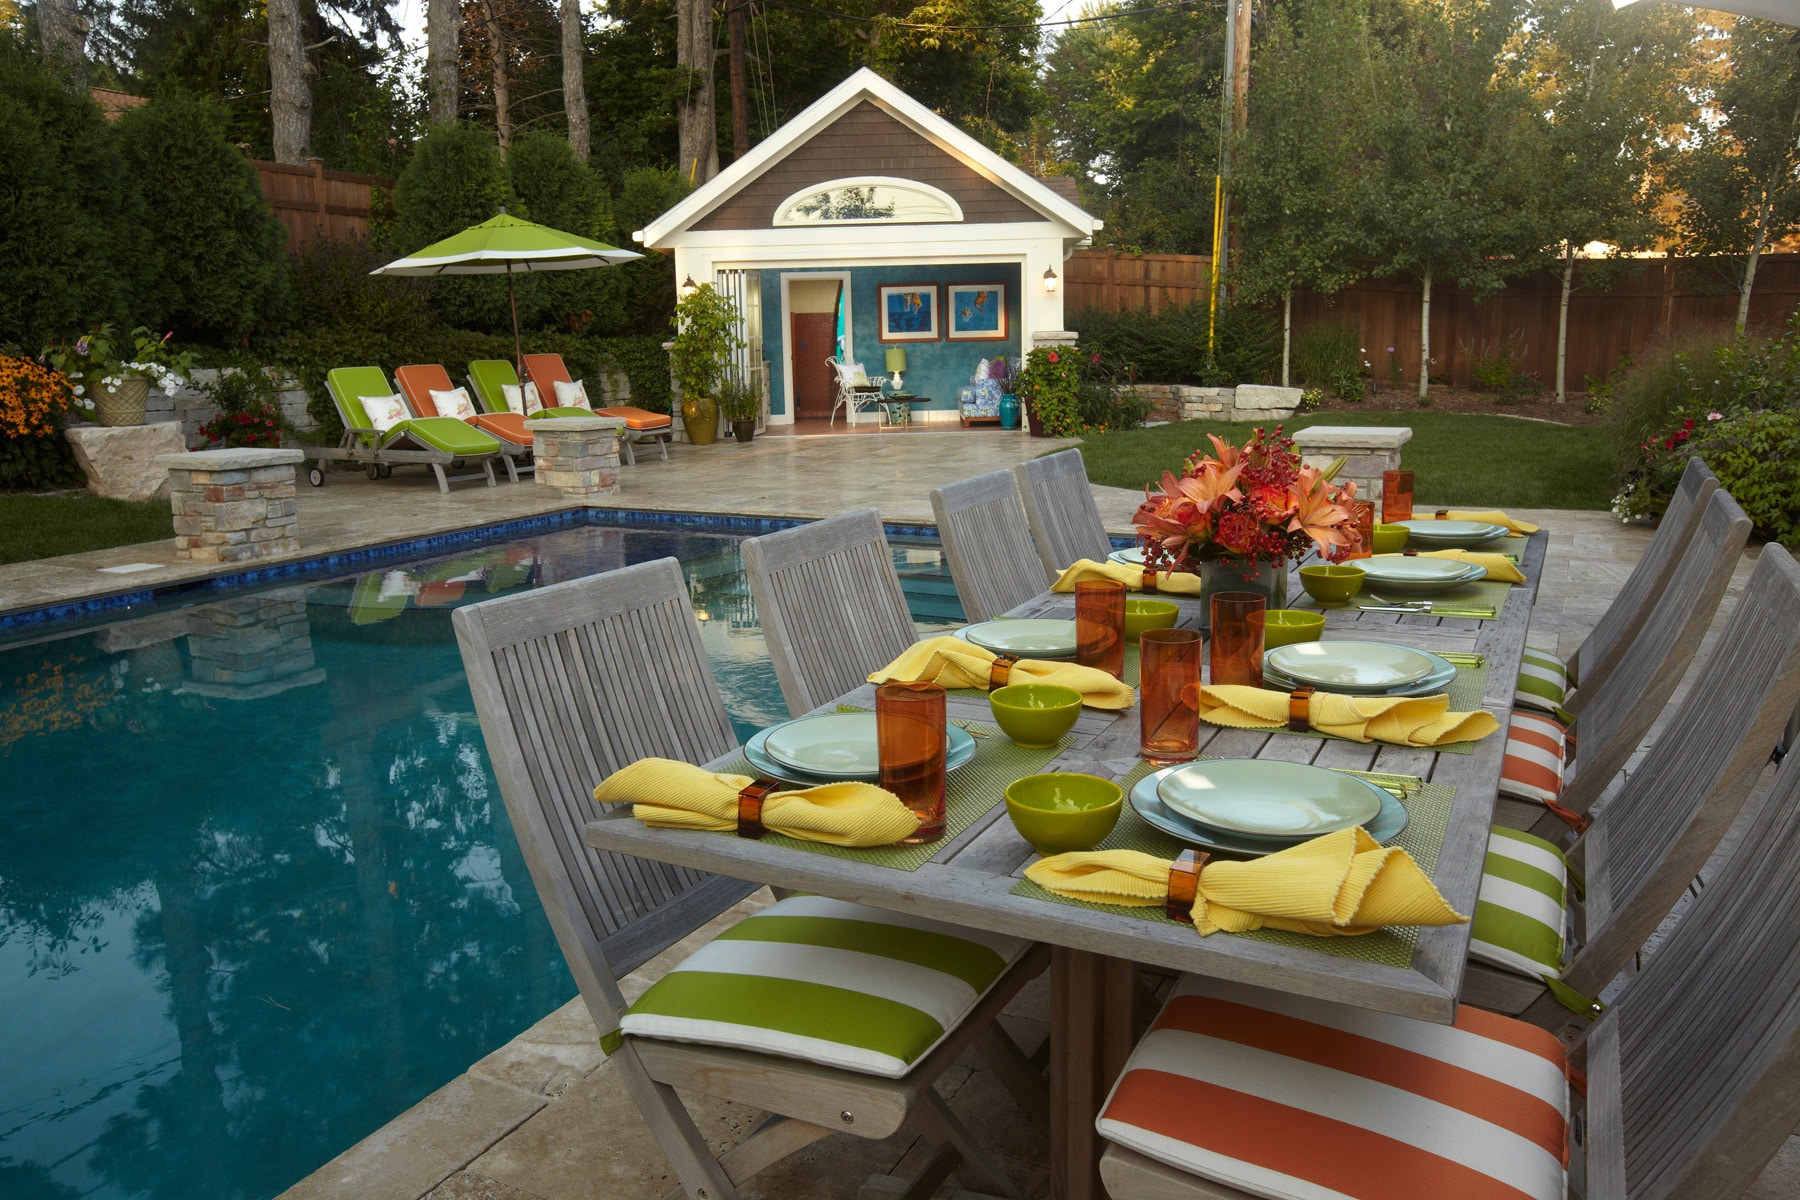 Poolside-Party-outdoor-dining-Minneapolis-interior-designer.jpeg